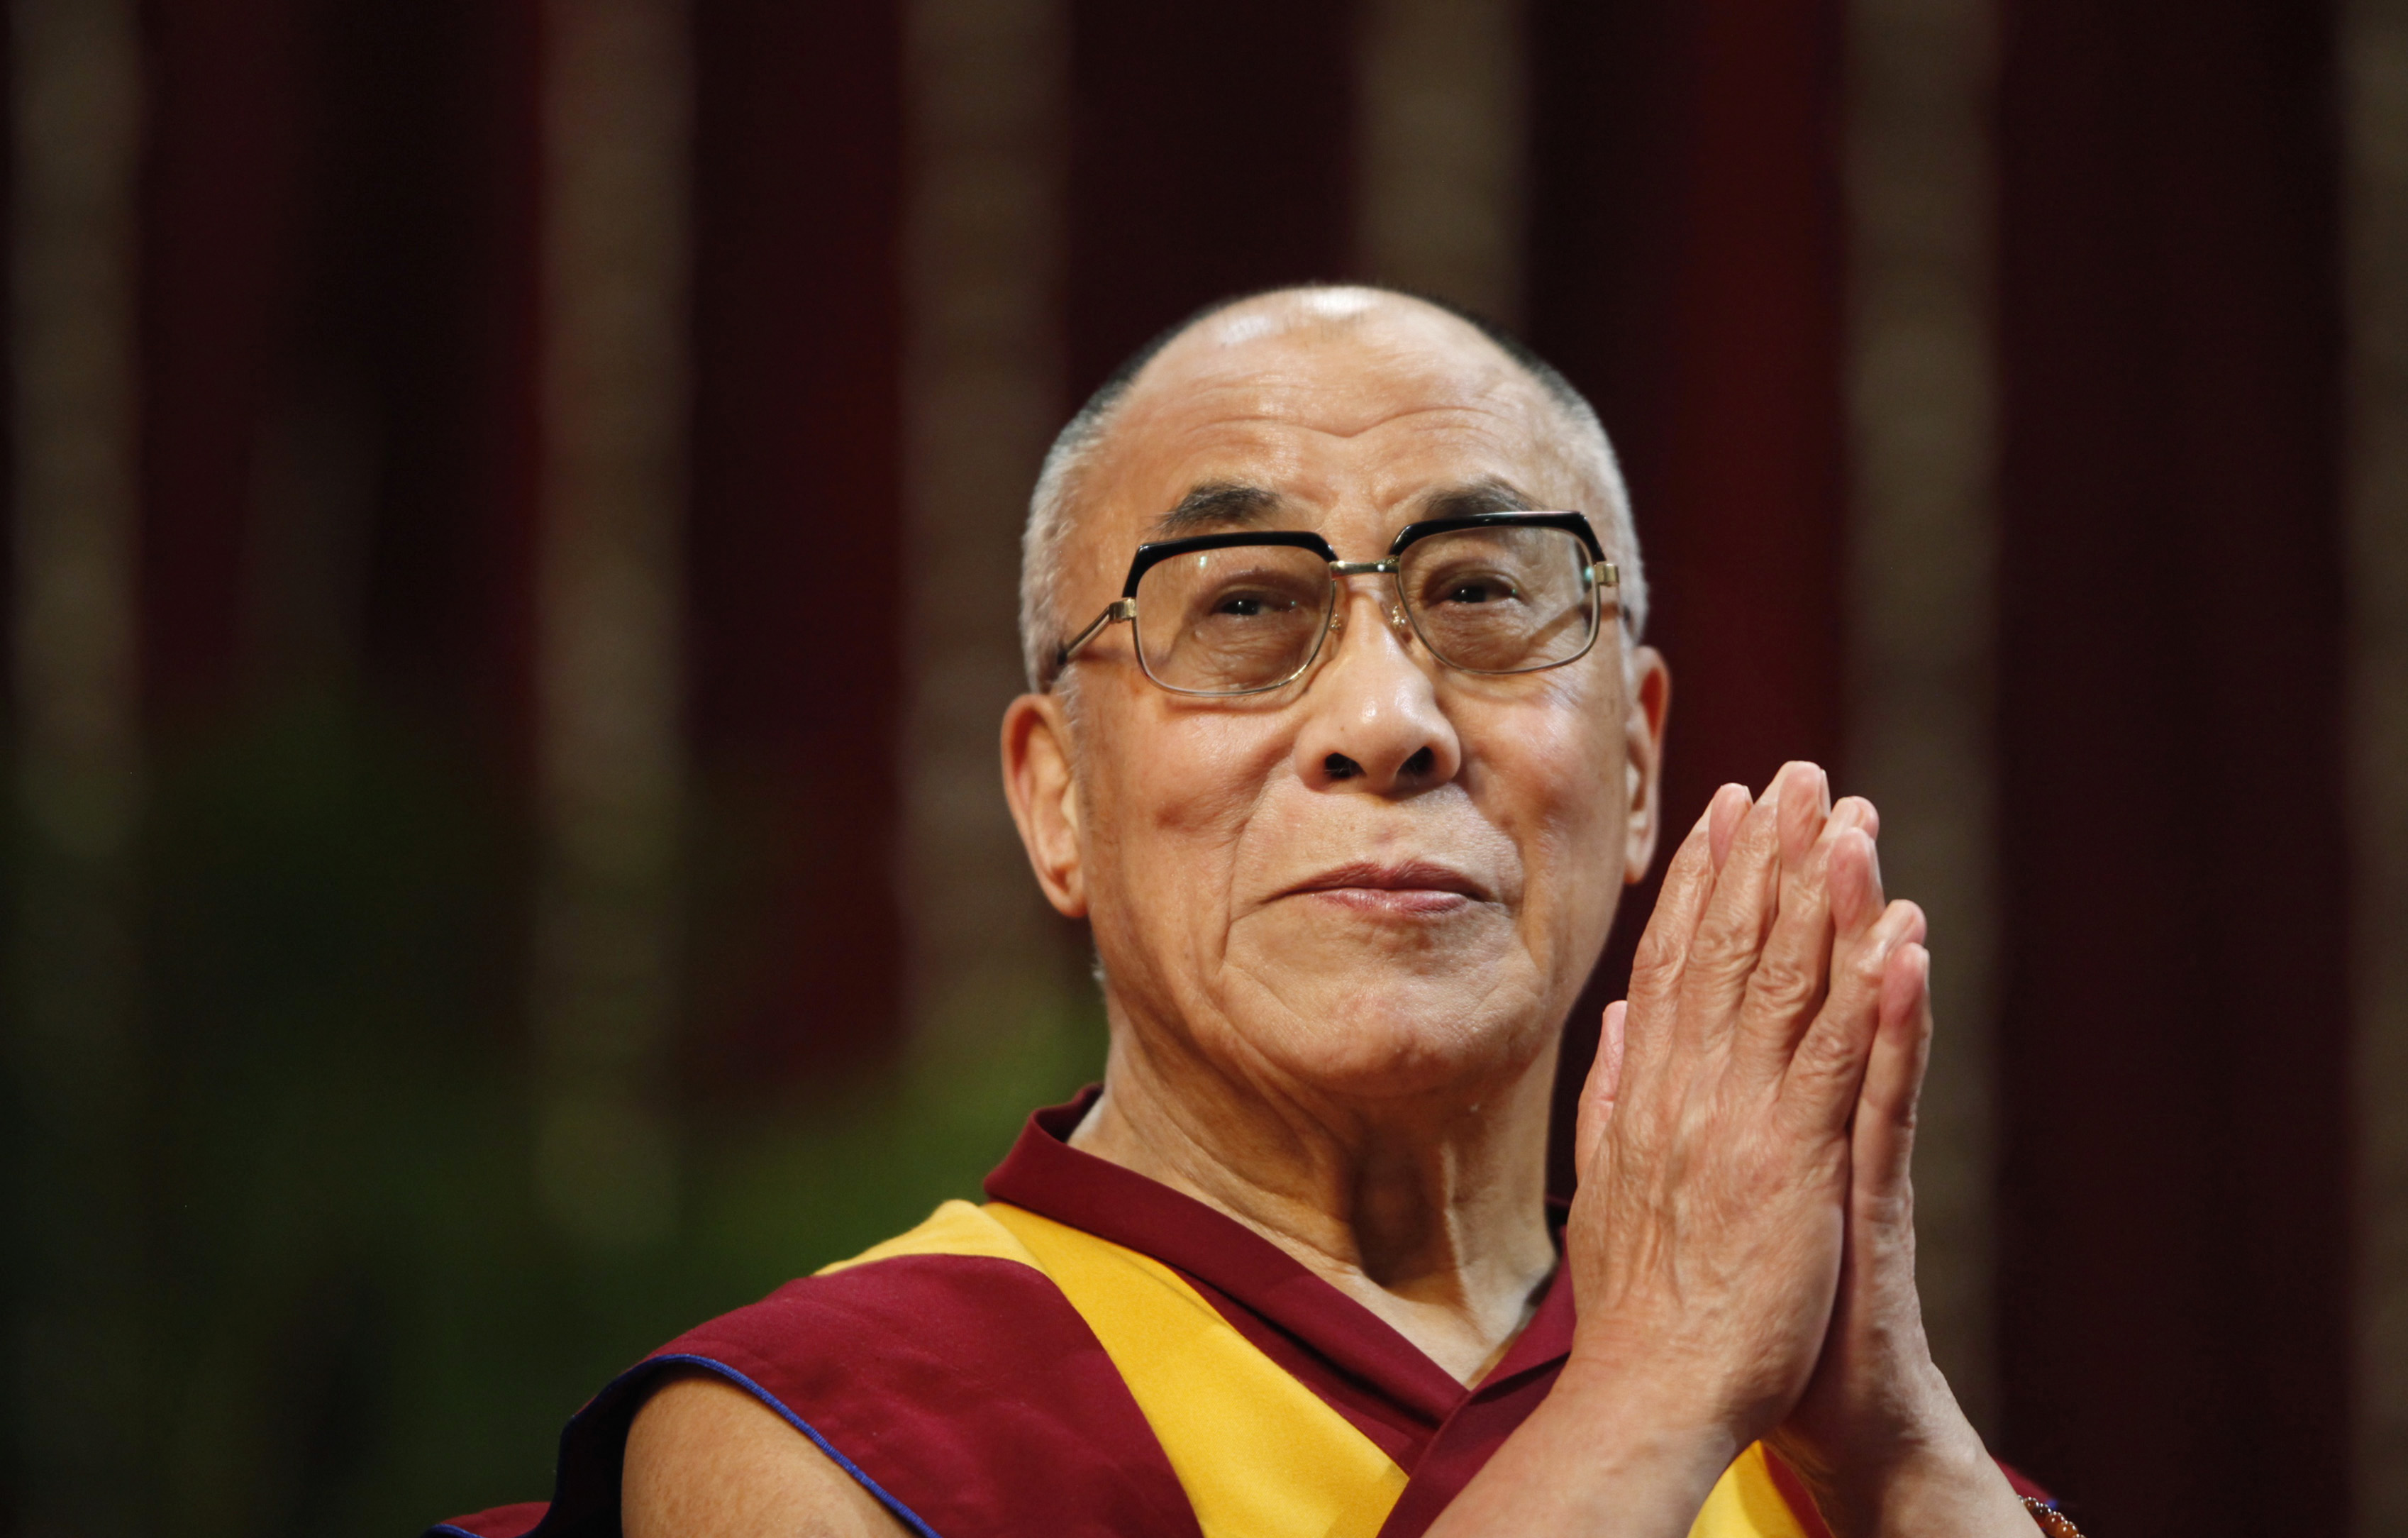 His Holiness the Dalai Lama. (Photo courtesy: Reuters)